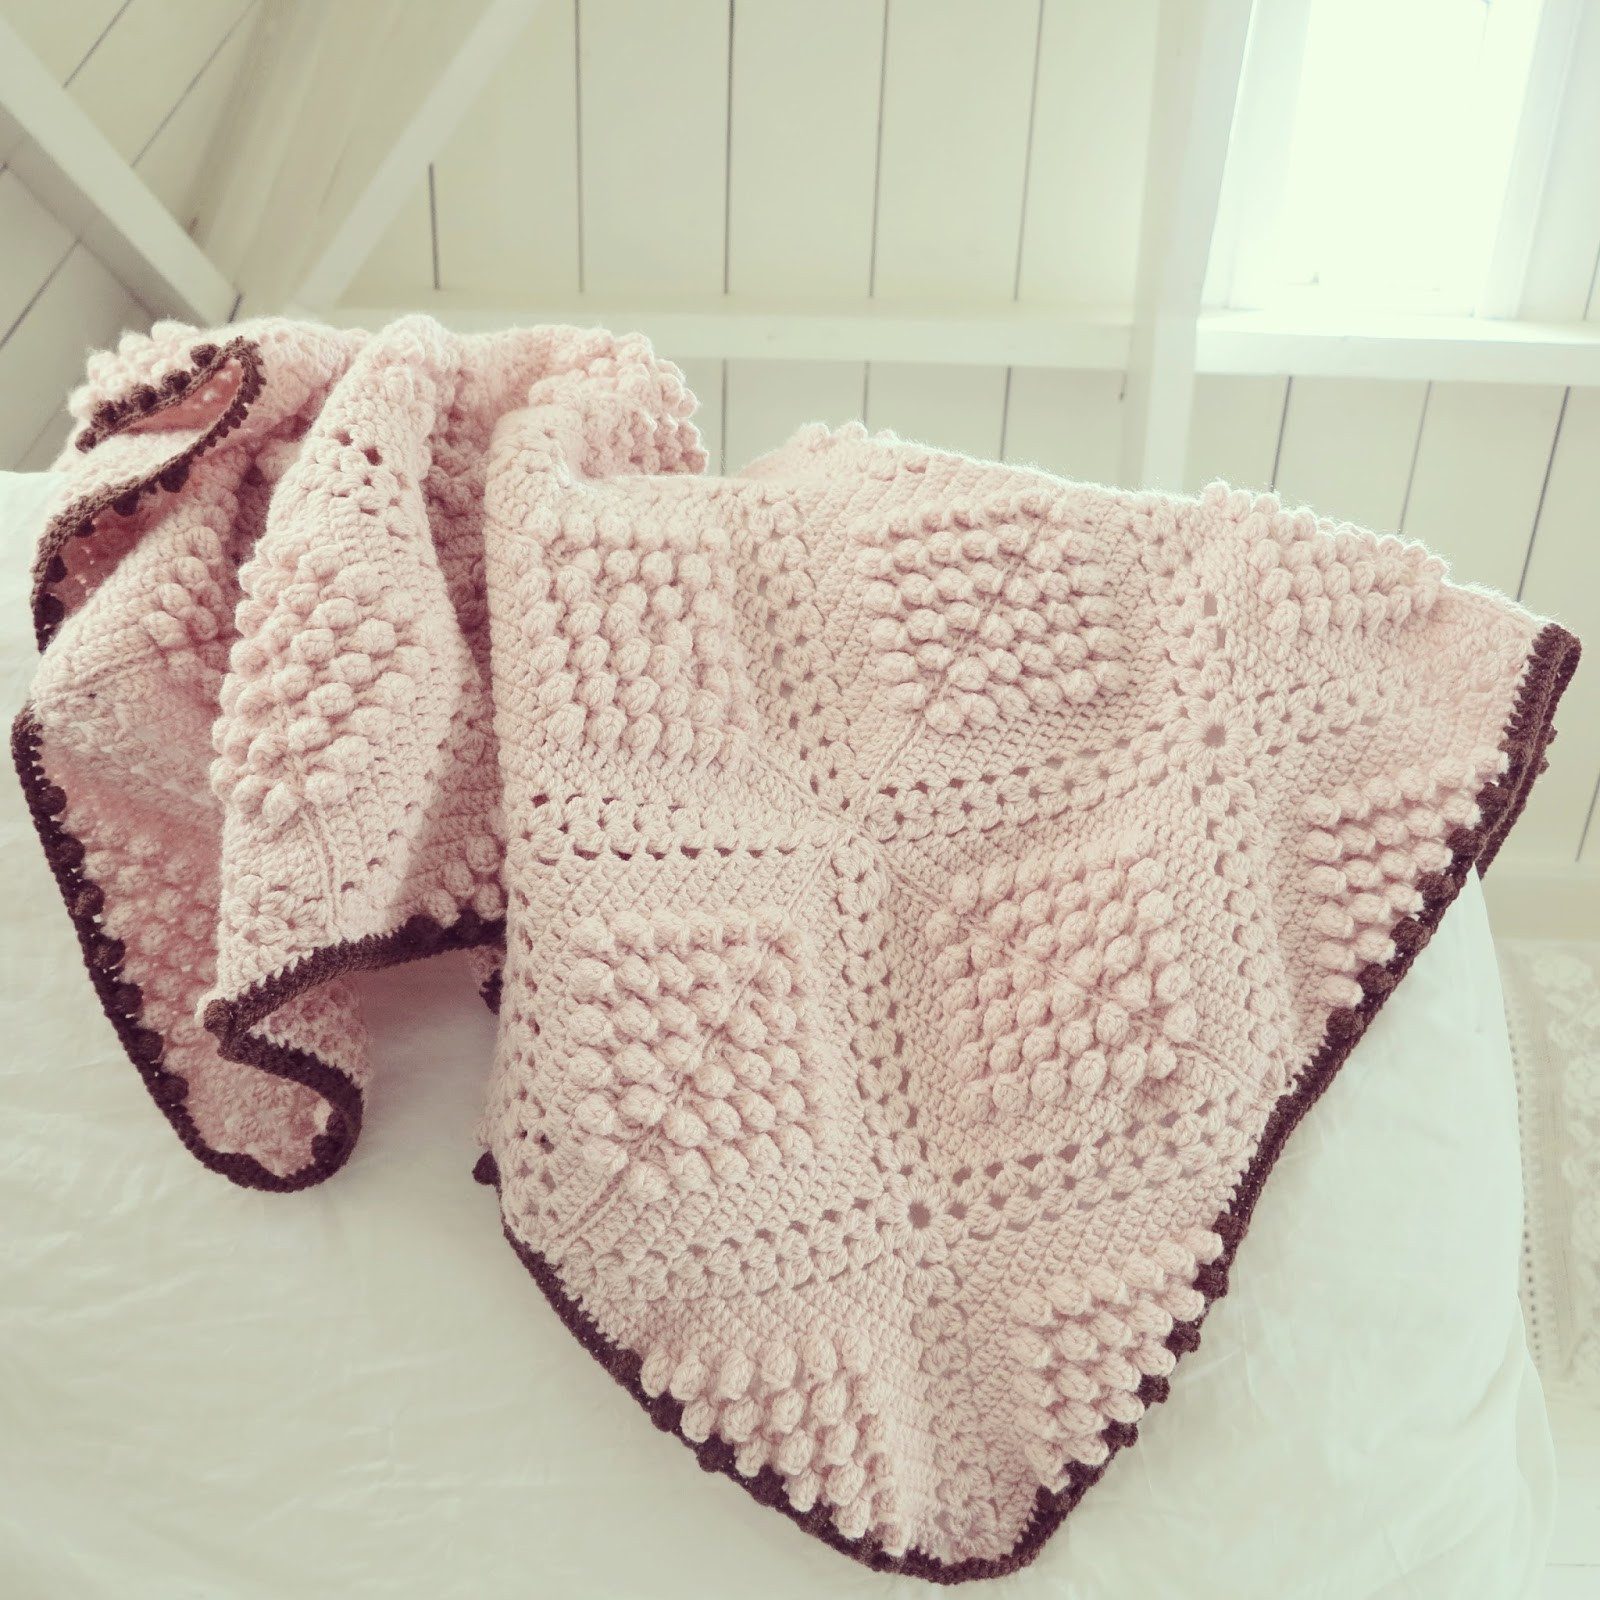 Lovely 10 Free Crochet Patterns & Tutorials for Baby Blankets Crochet Throw Blanket Patterns Free Of Incredible 43 Ideas Crochet Throw Blanket Patterns Free